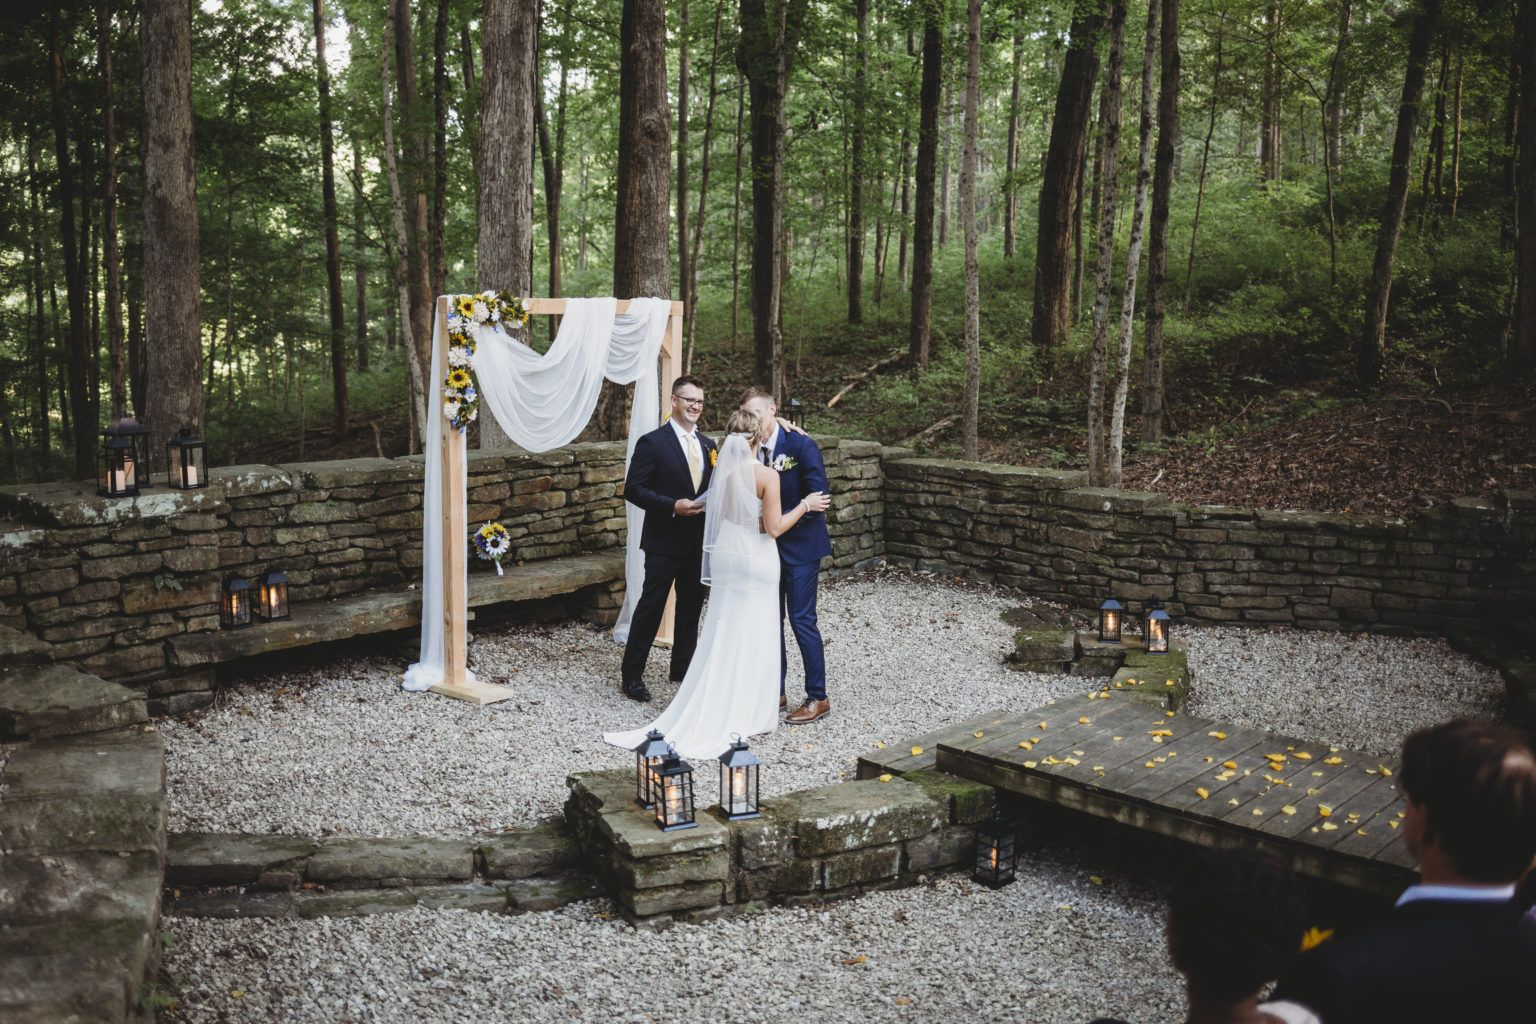 Indiana elopement ideas in 2020 intimate wedding venues